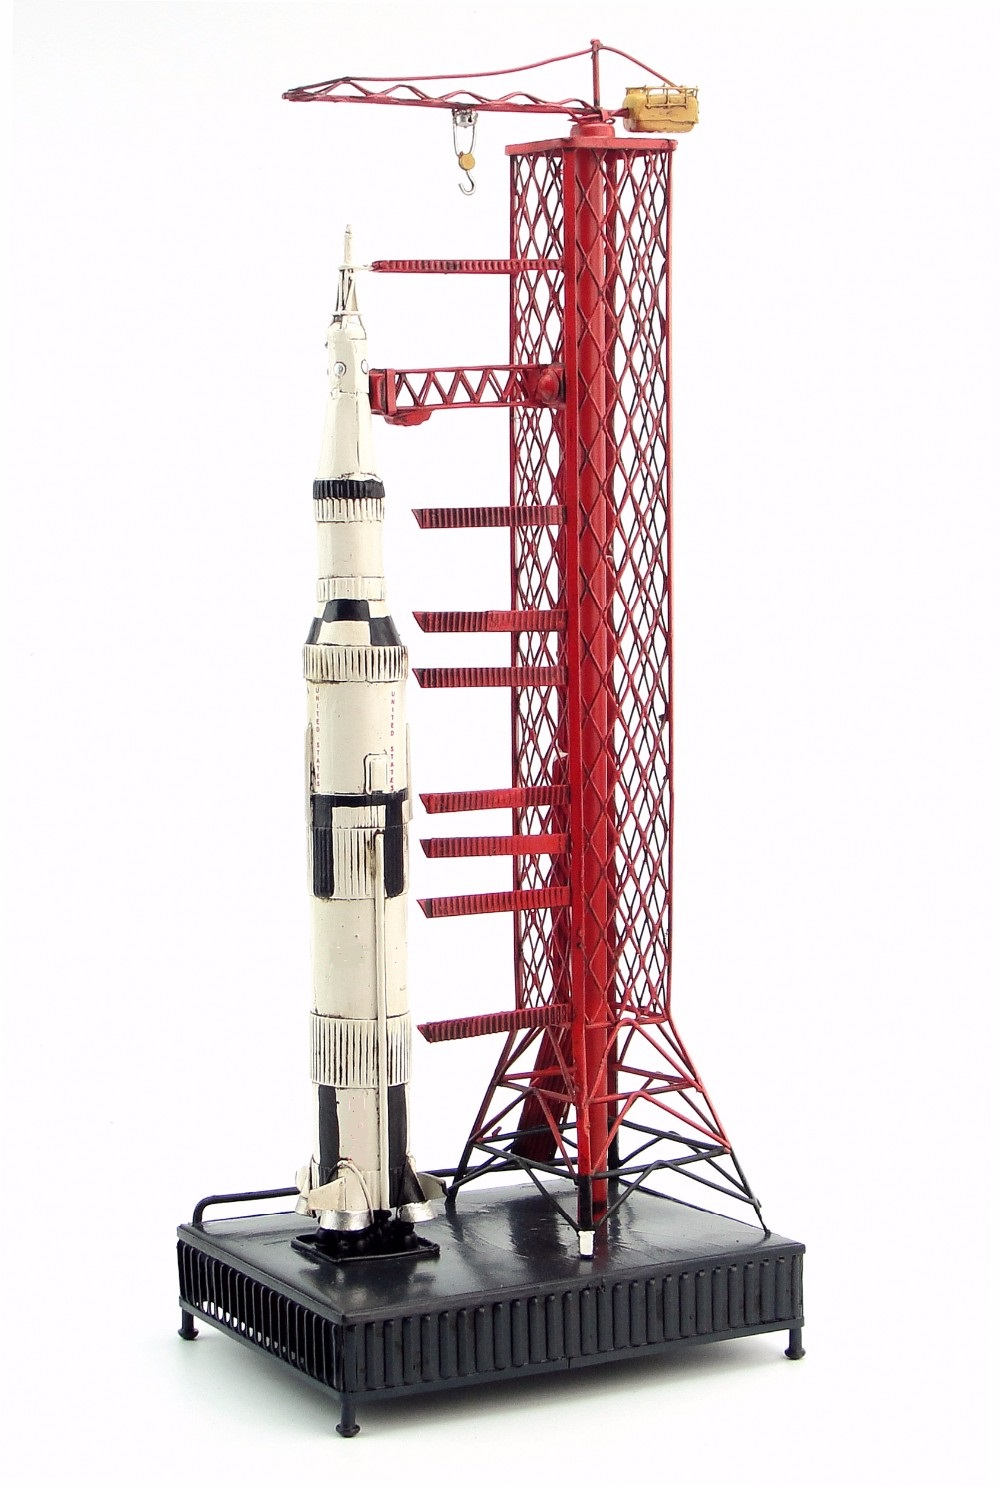 Appollo Saturn five rocket retro classic forging metal crafts model ROCKET